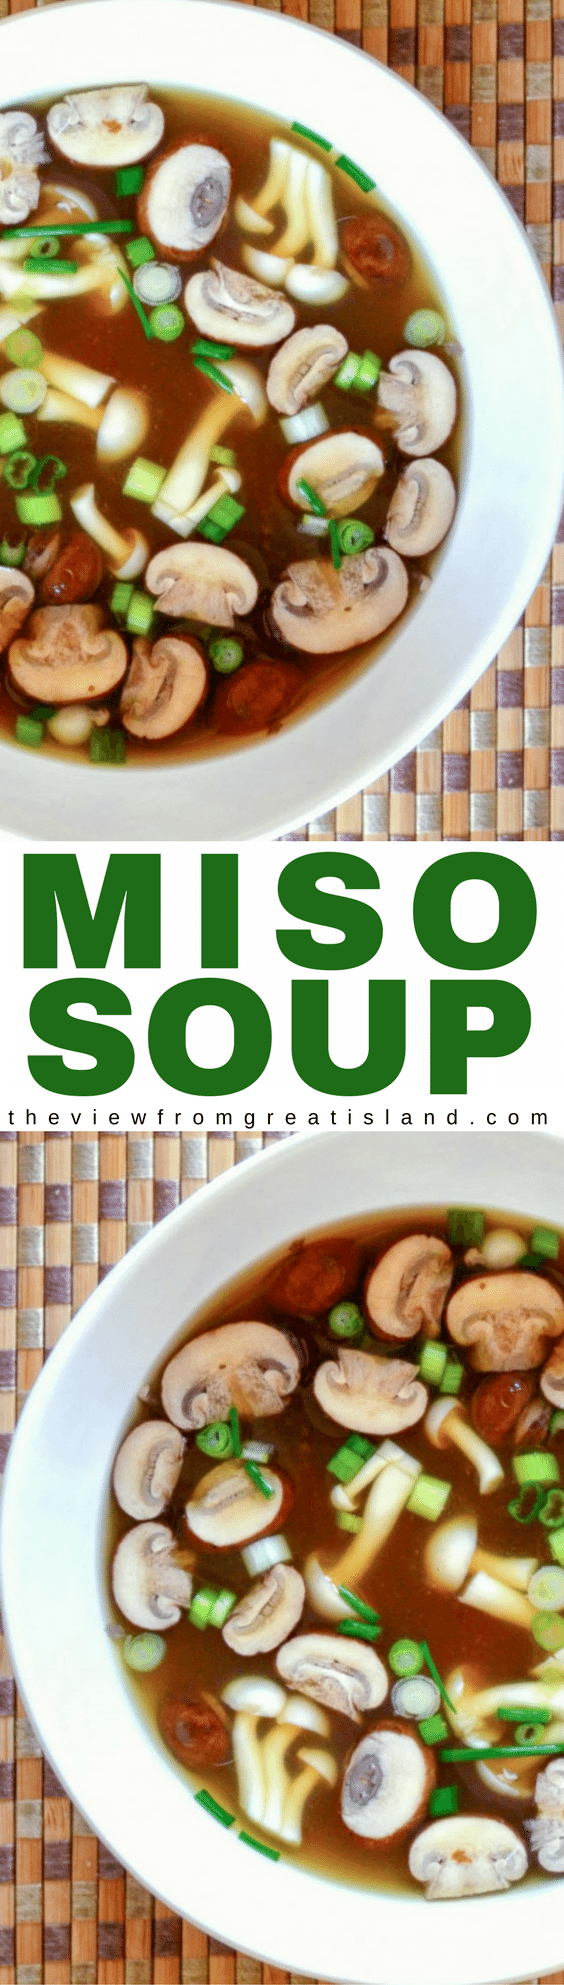 Miso Soup is the original health food, it's been nourishing the Japanese for centuries, and you can make it yourself in minutes.#30minutemeal #healthymeal #soup #miso #healthysoup #japanese #japanesesoup #mushroomsoup #umami #easysoup #vegan #vegetarian #whole30 #paleo #appetizer #broth #soybeans